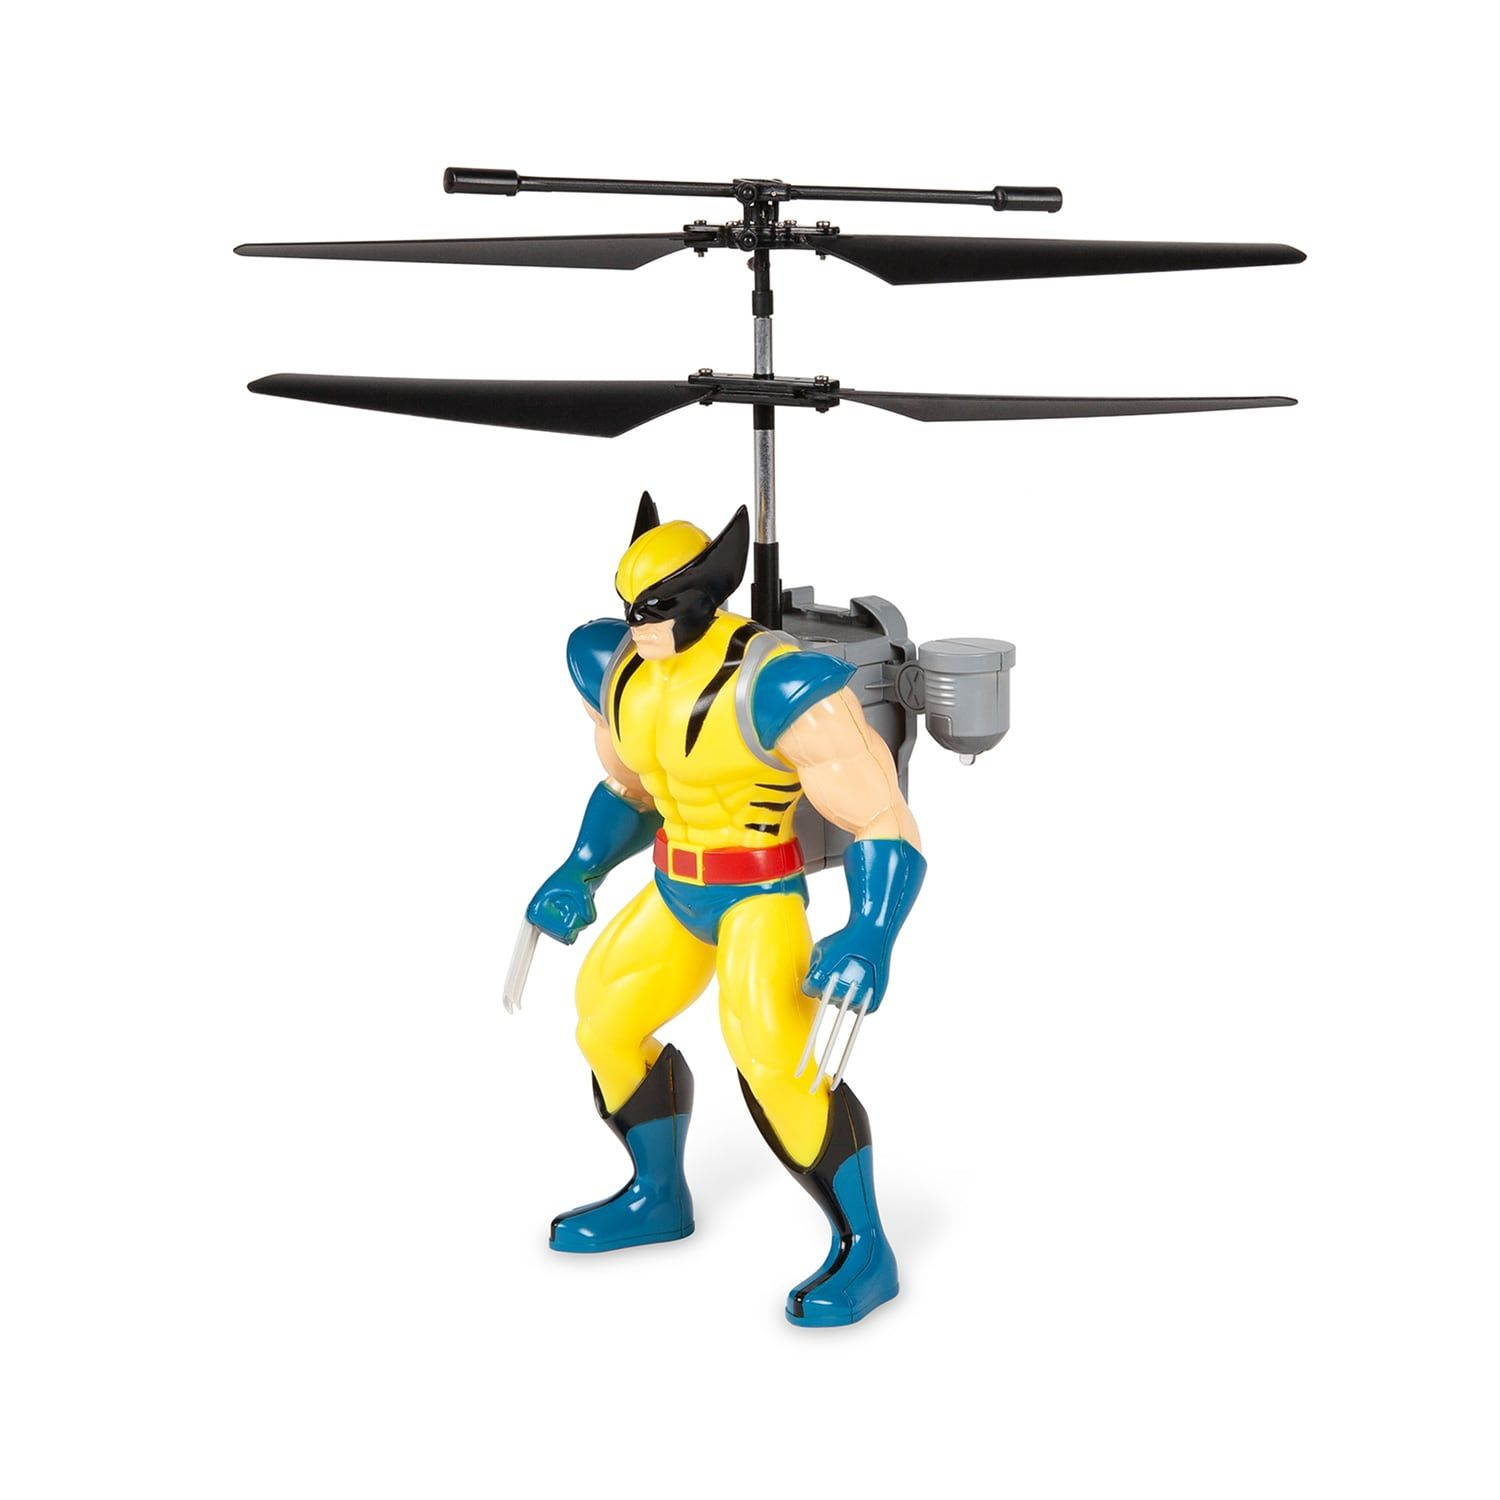 World Tech Toys Wolverine Jetpack Flying Figure Helicopter #techtoys